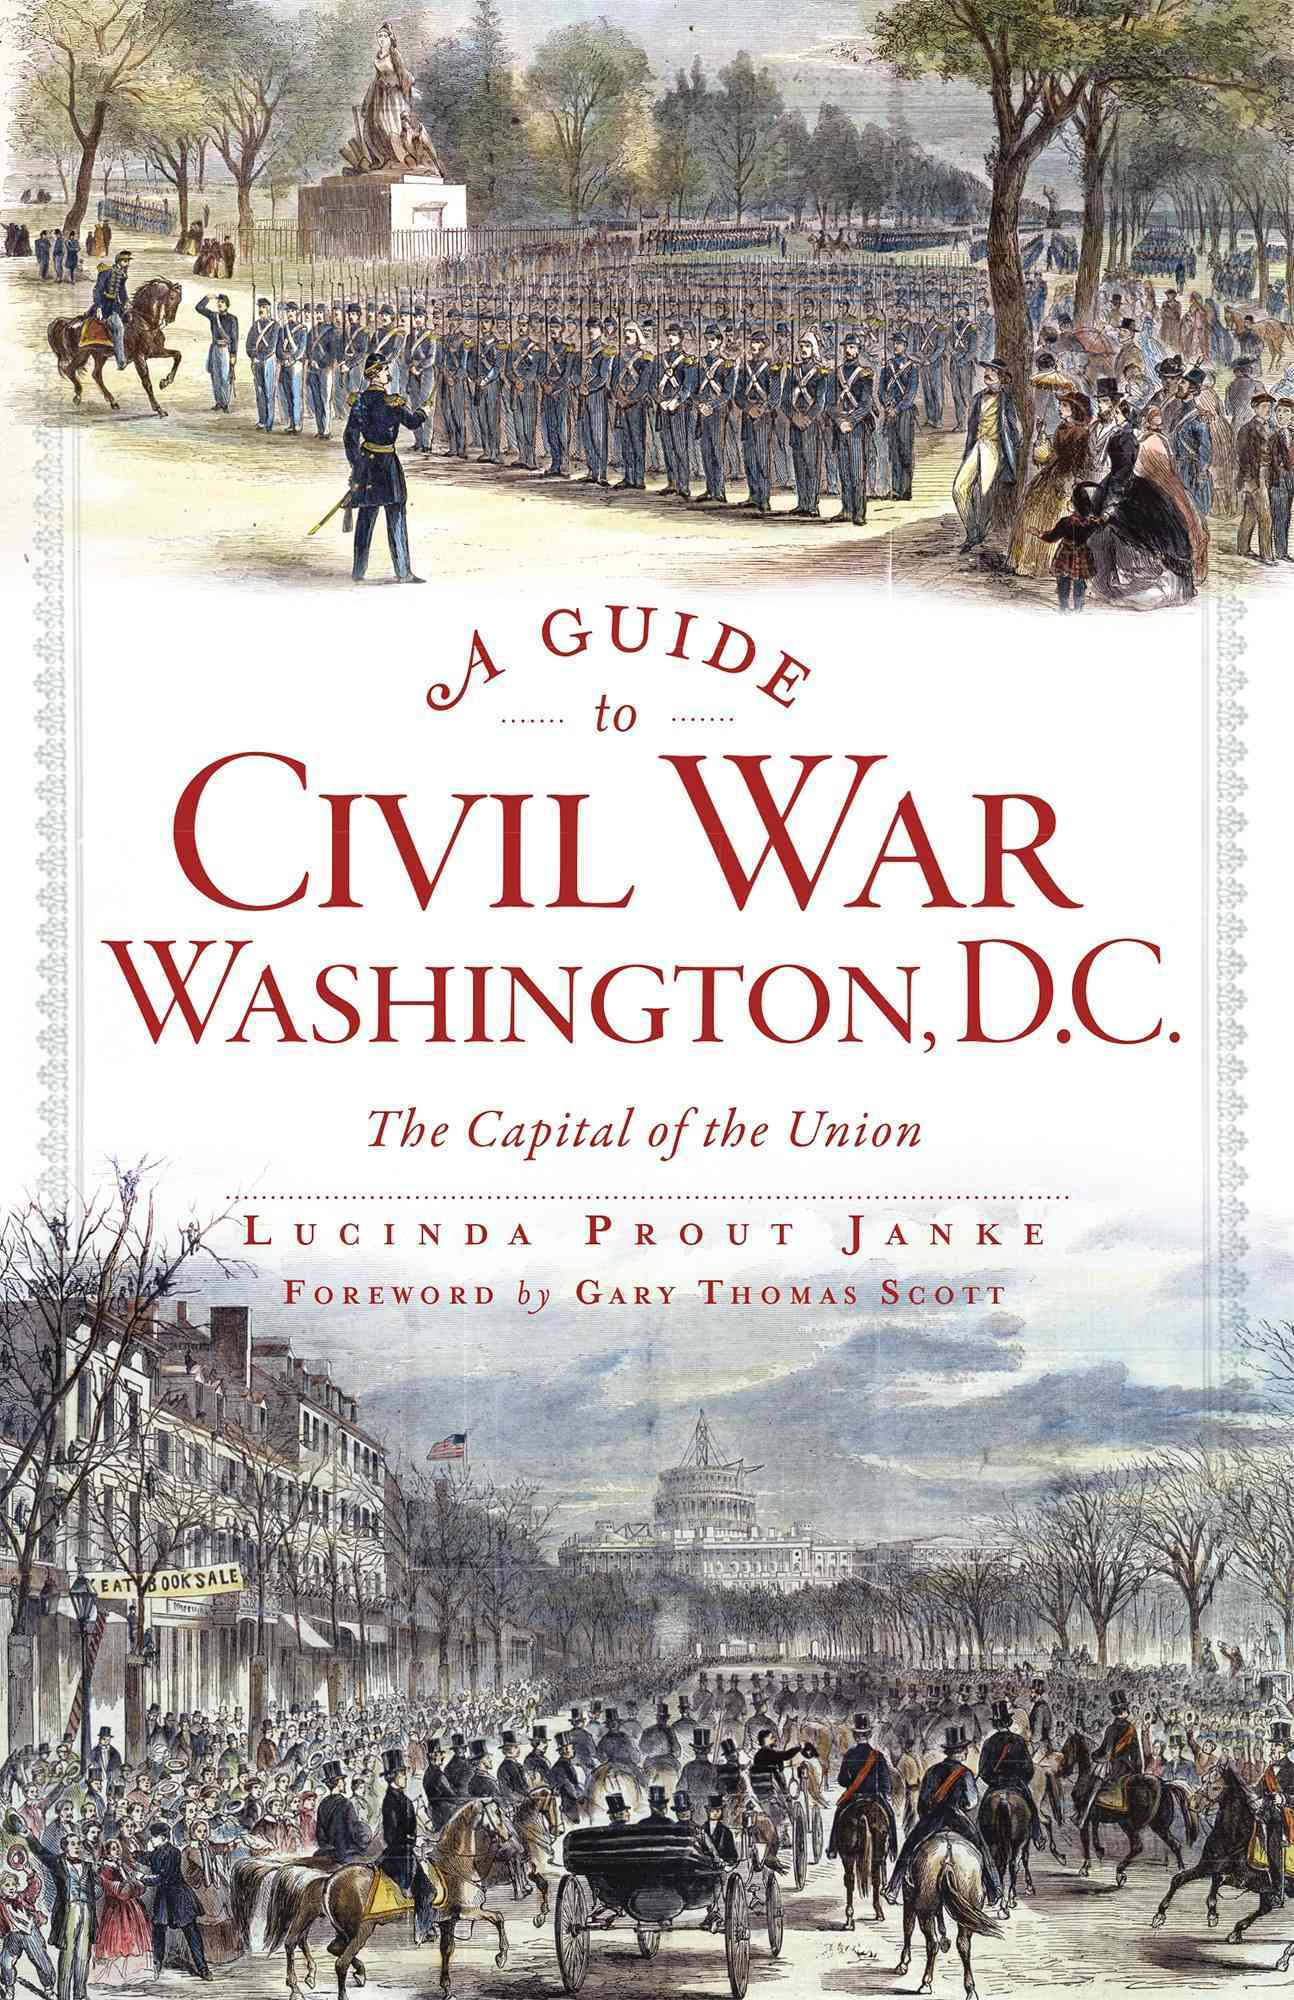 A Guide to Civil War Washington, D.C.: The Capital of the Union (Paperback)